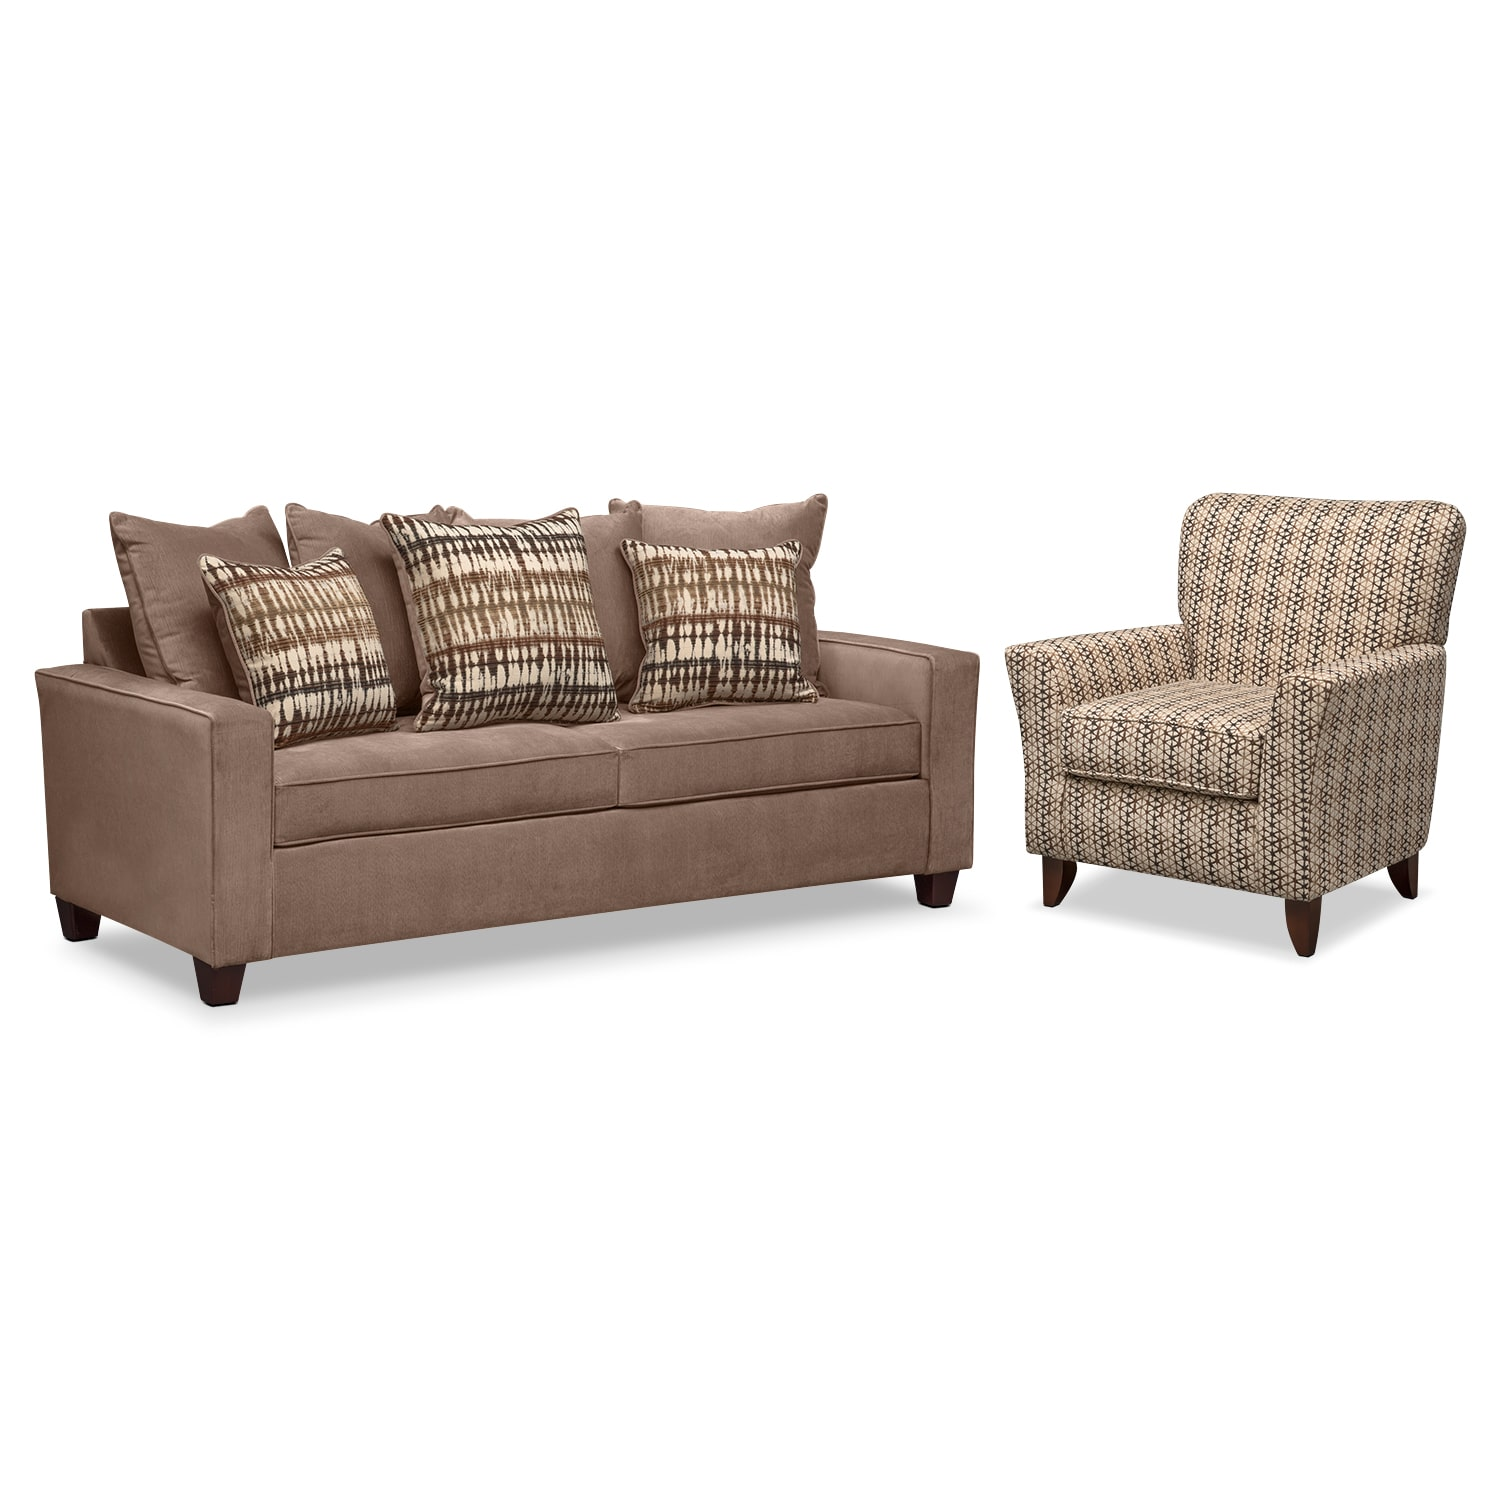 Bryden Queen Memory Foam Sleeper Sofa and Accent Chair Set - Chocolate